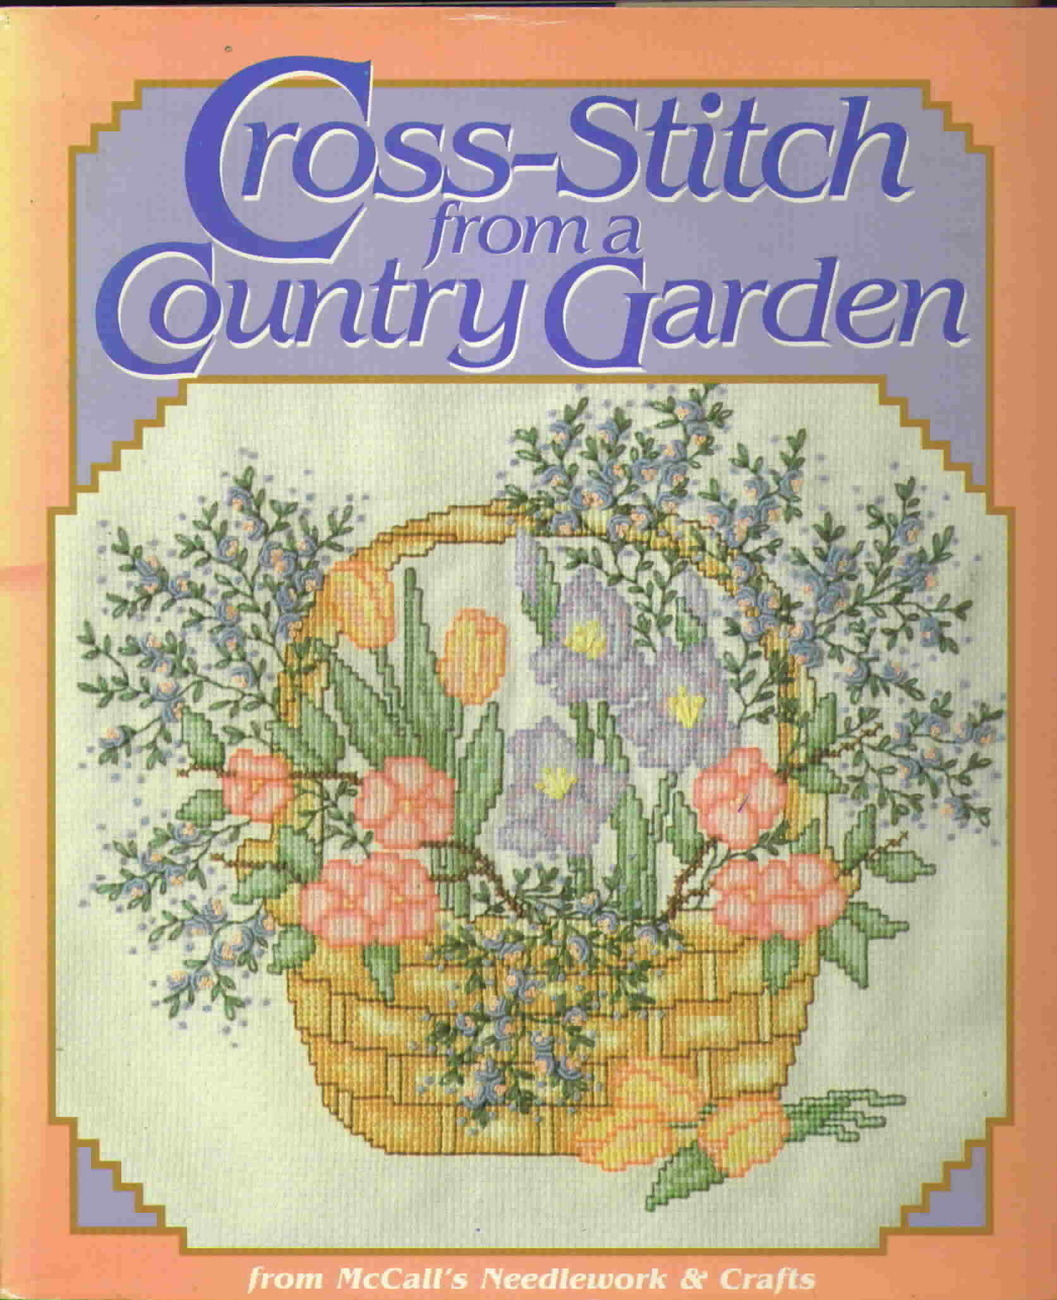 Cross stitch from a country garden